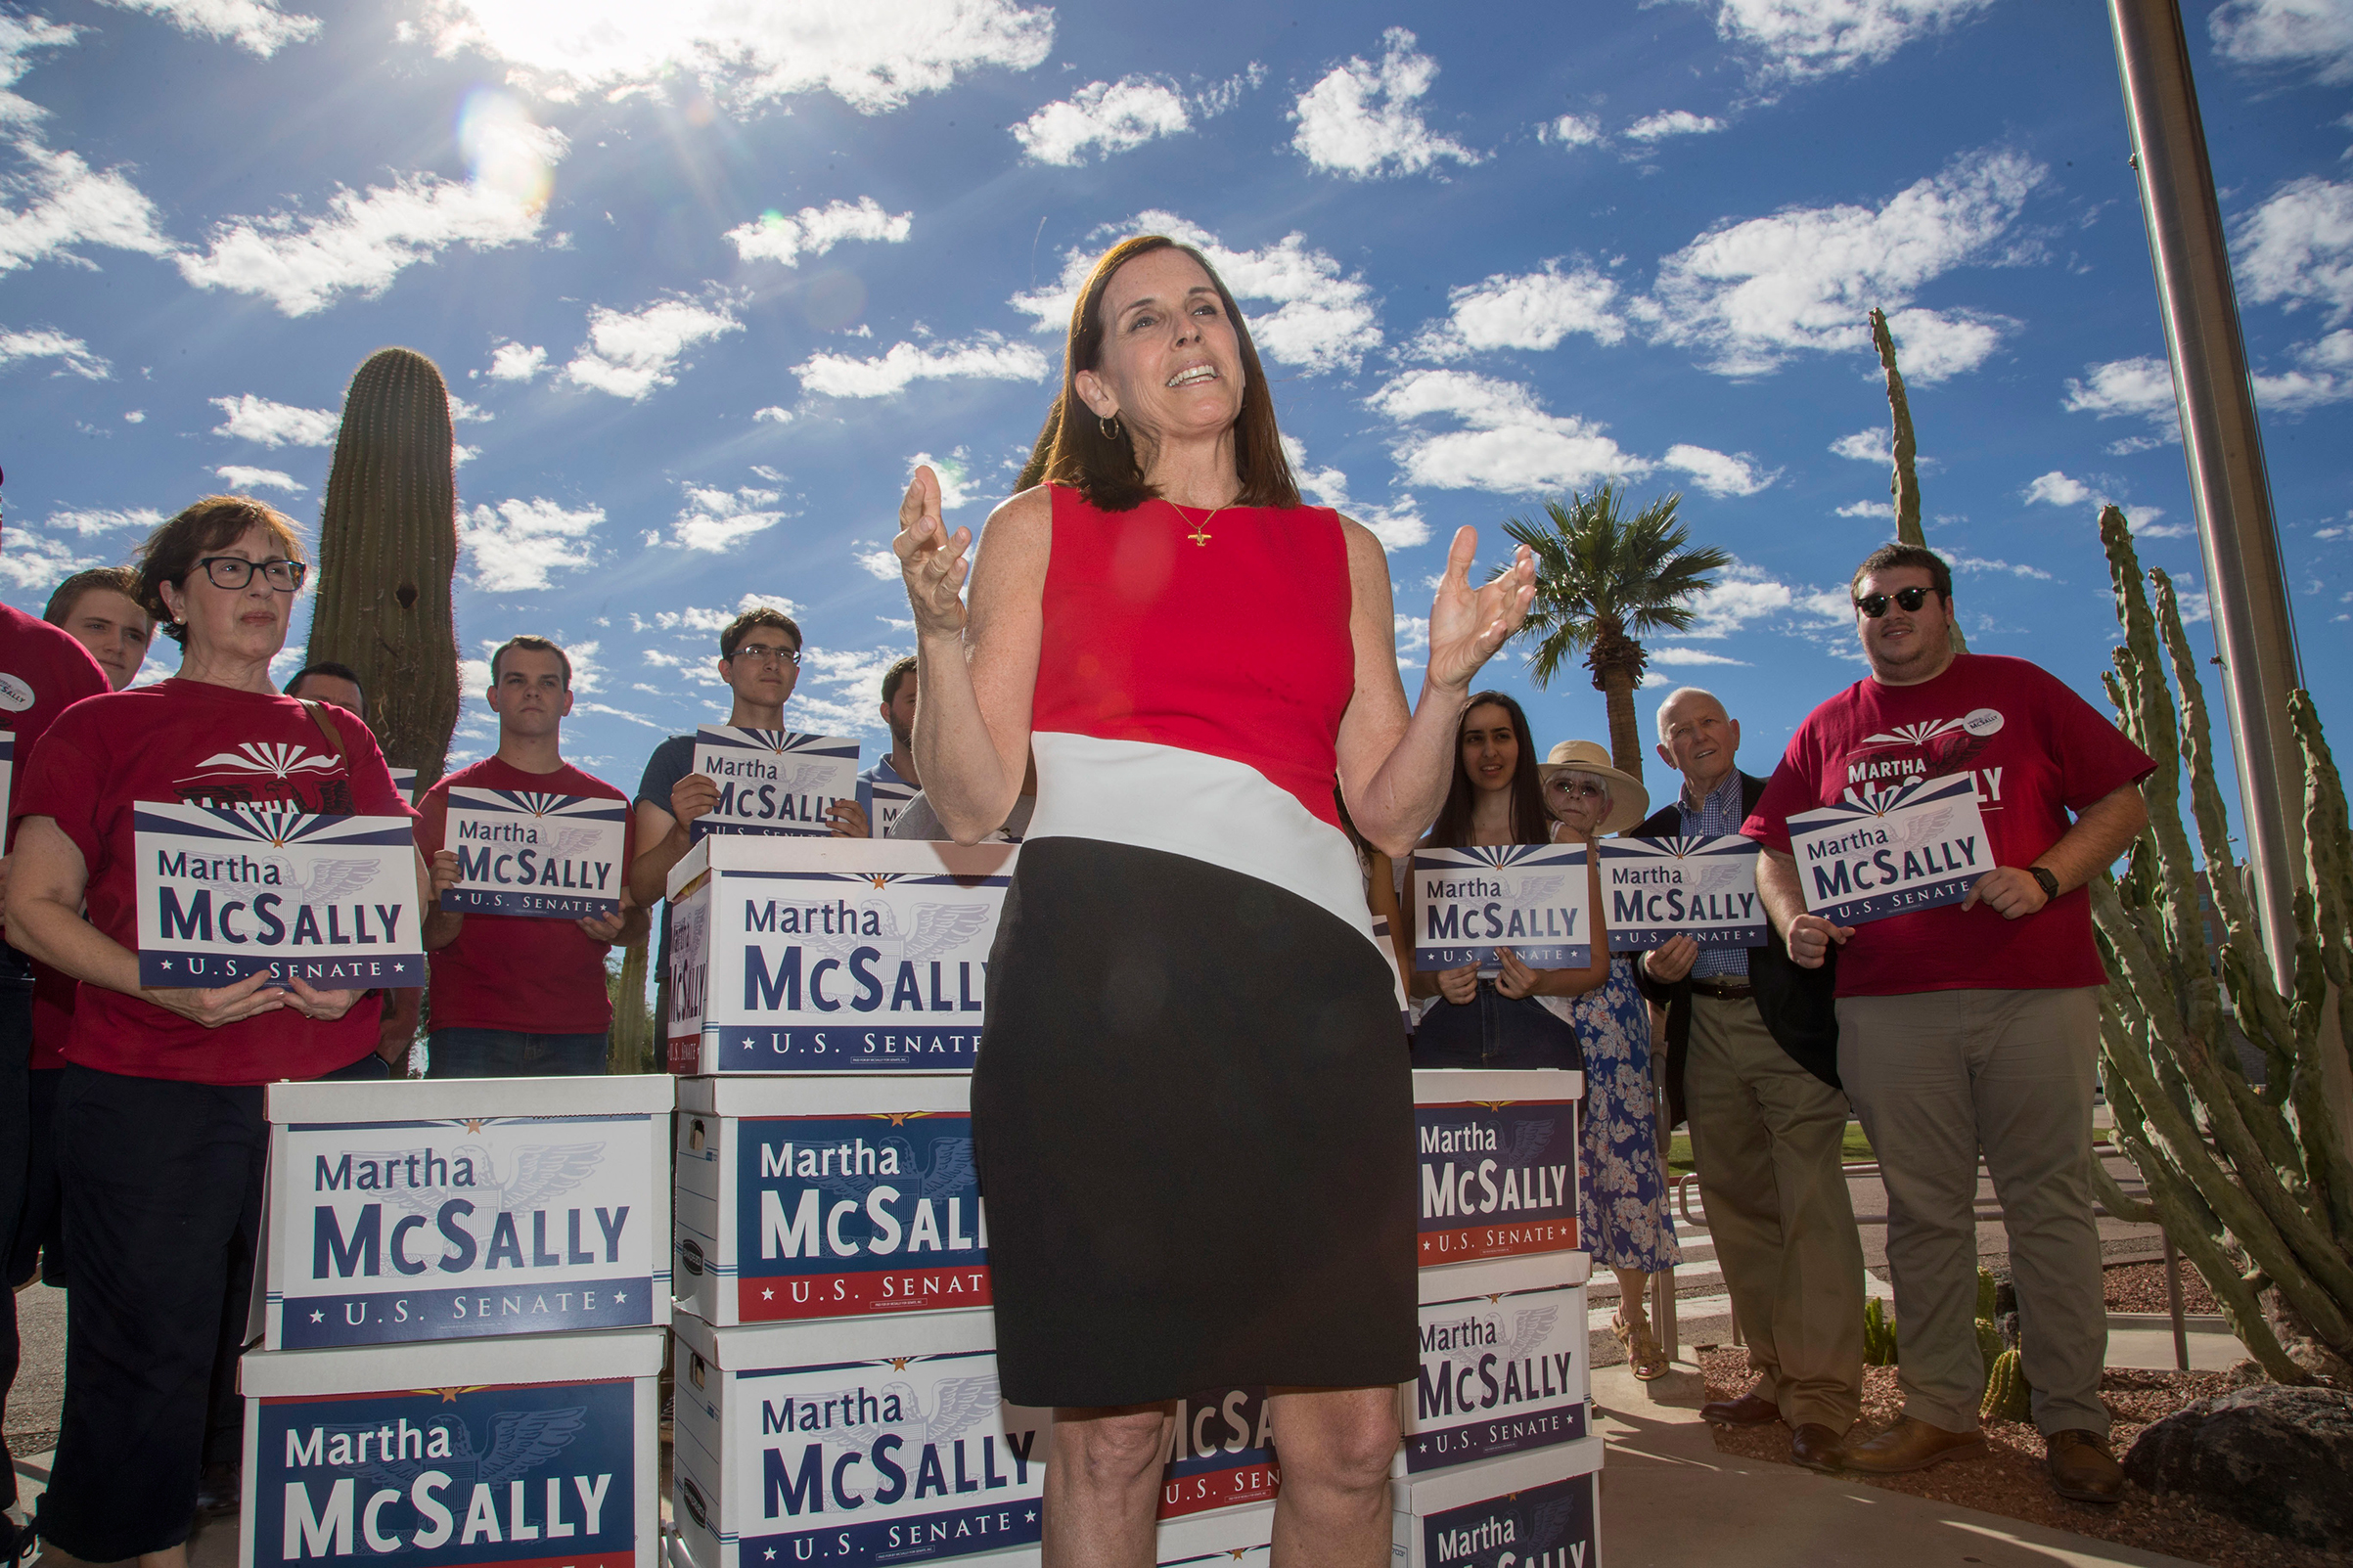 Once a critic, McSally has embraced Trump in pursuit of his base